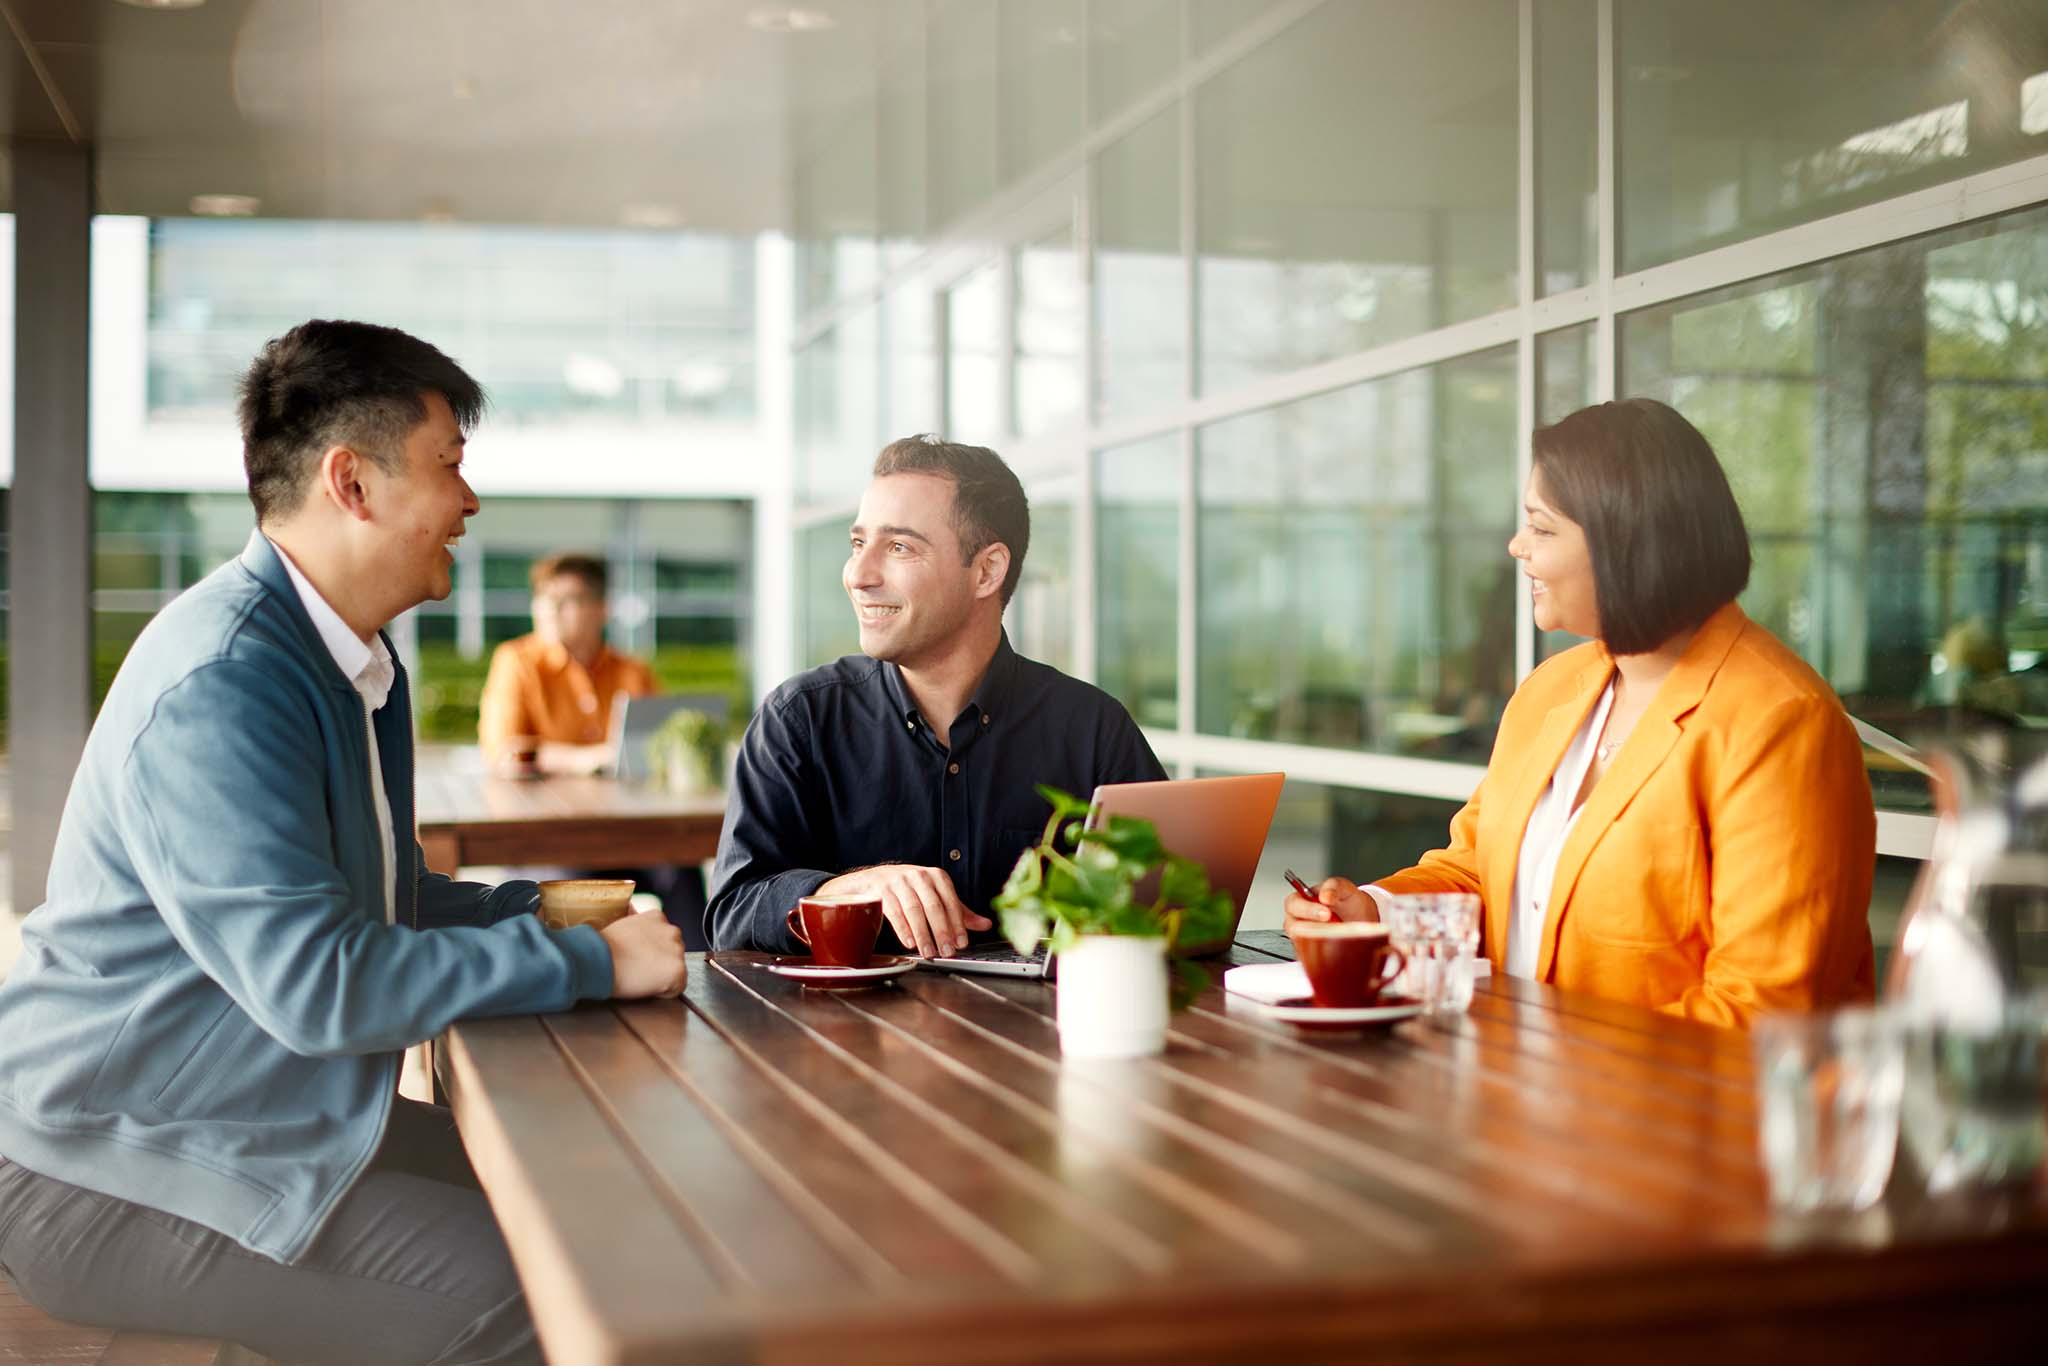 Three people enjoy a business meeting at a cafe